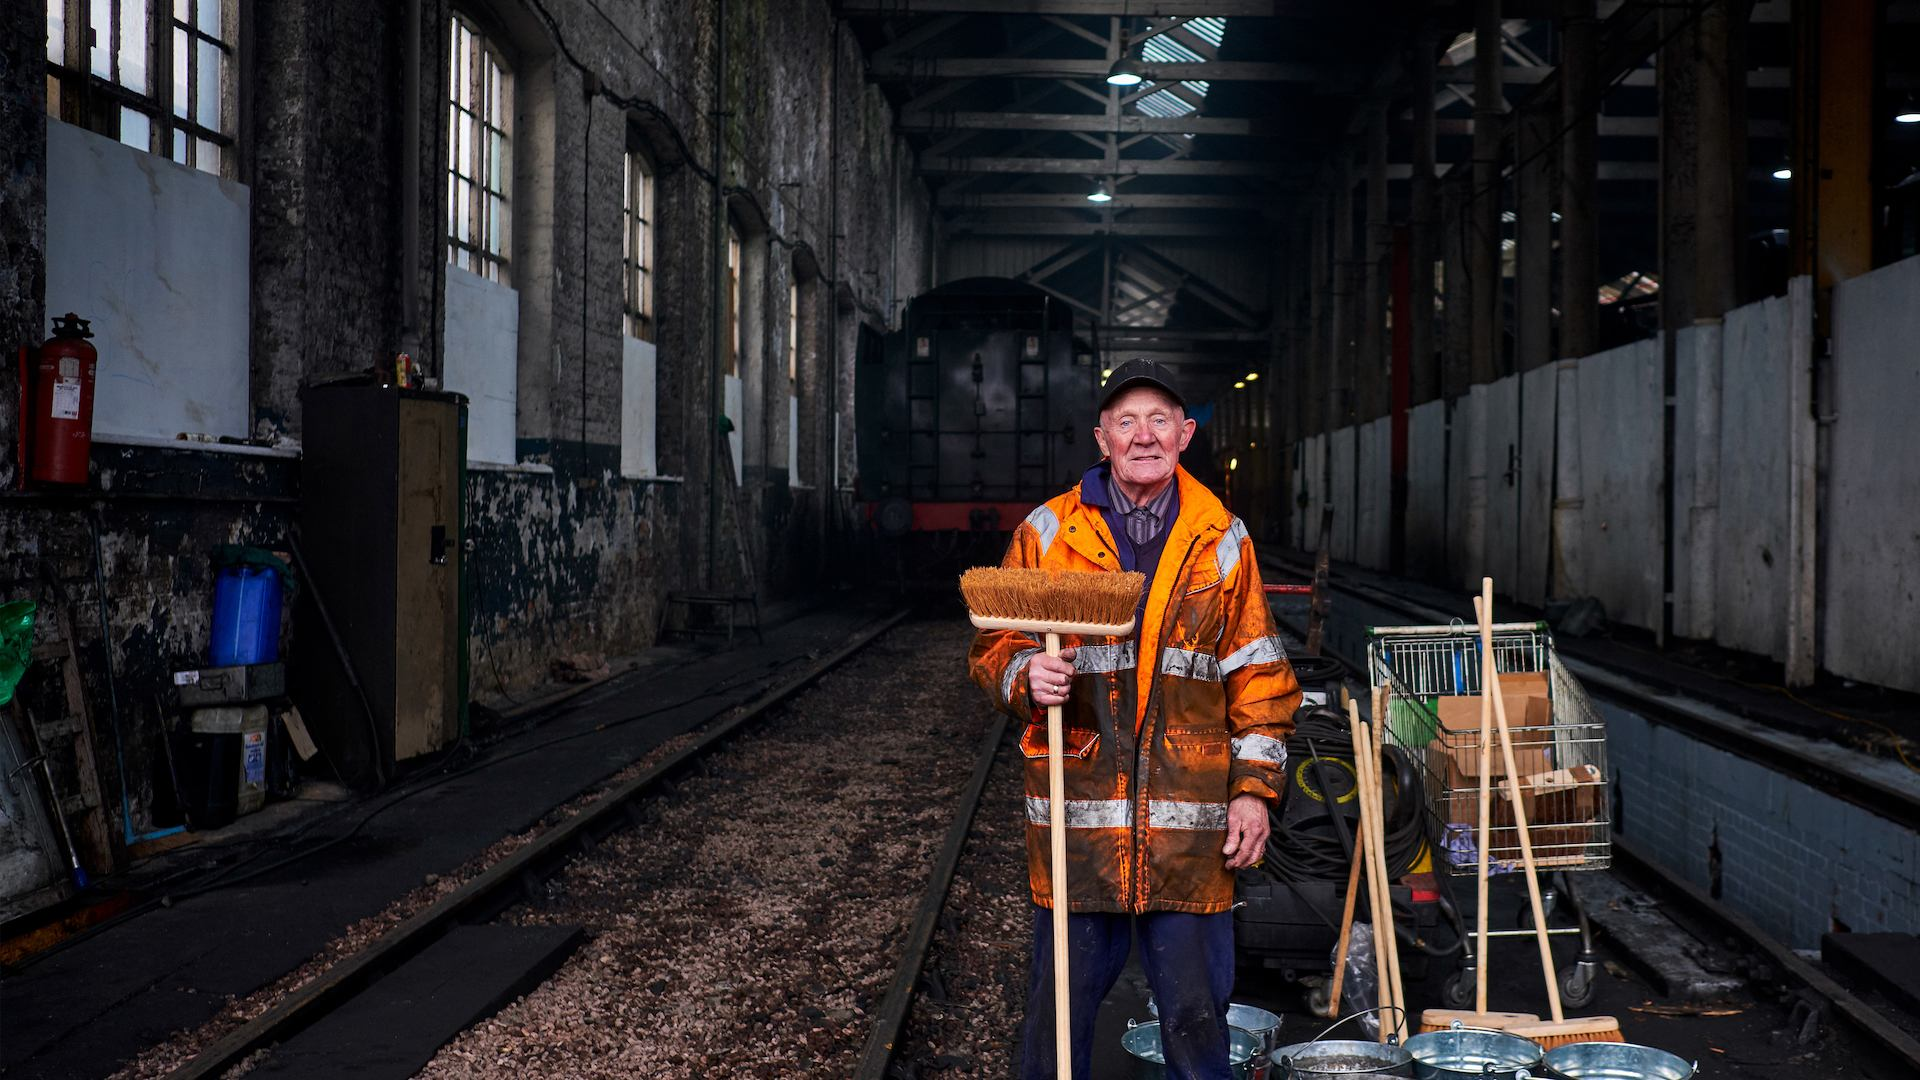 a male railway volunteer